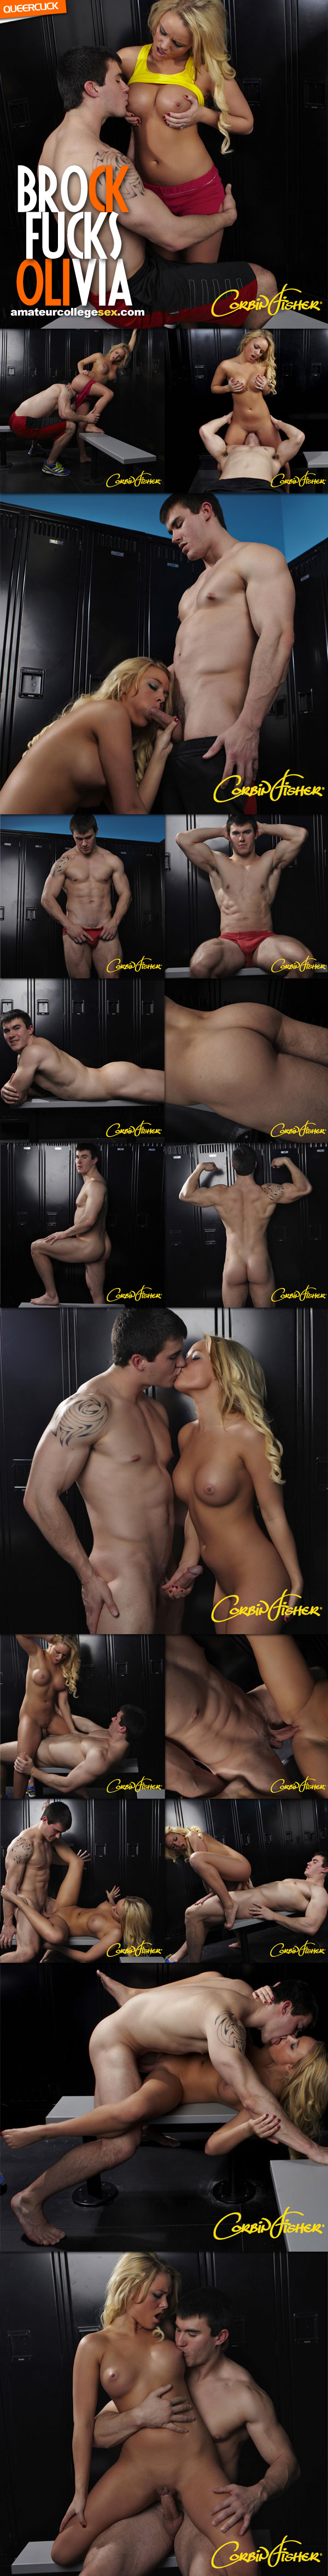 Amateur College Sex: Brock Fucks Olivia